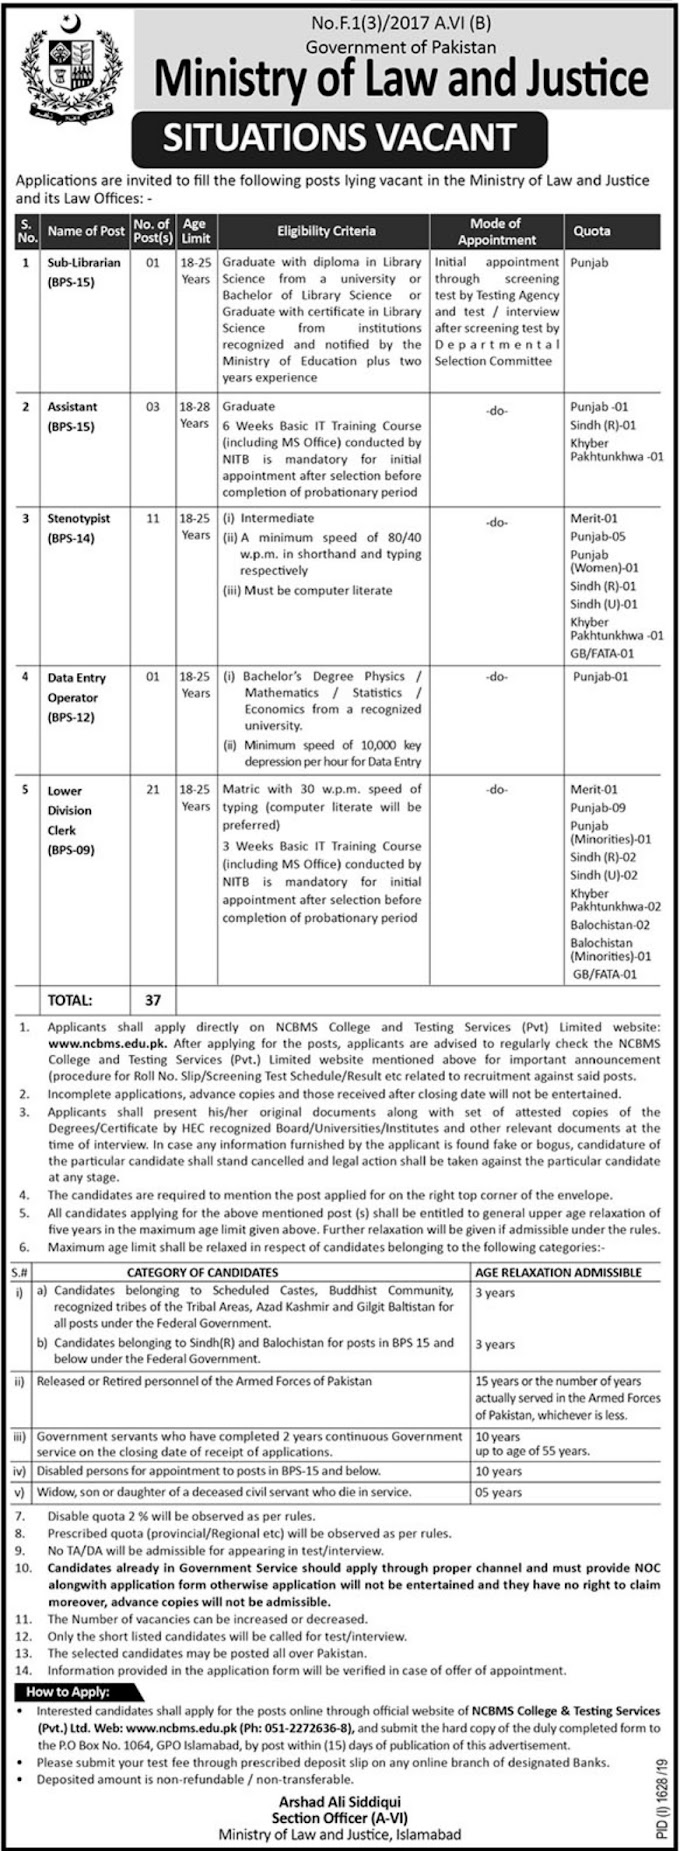 Law and Justice Ministry of Pakistan Jobs 2019 Recent advertising